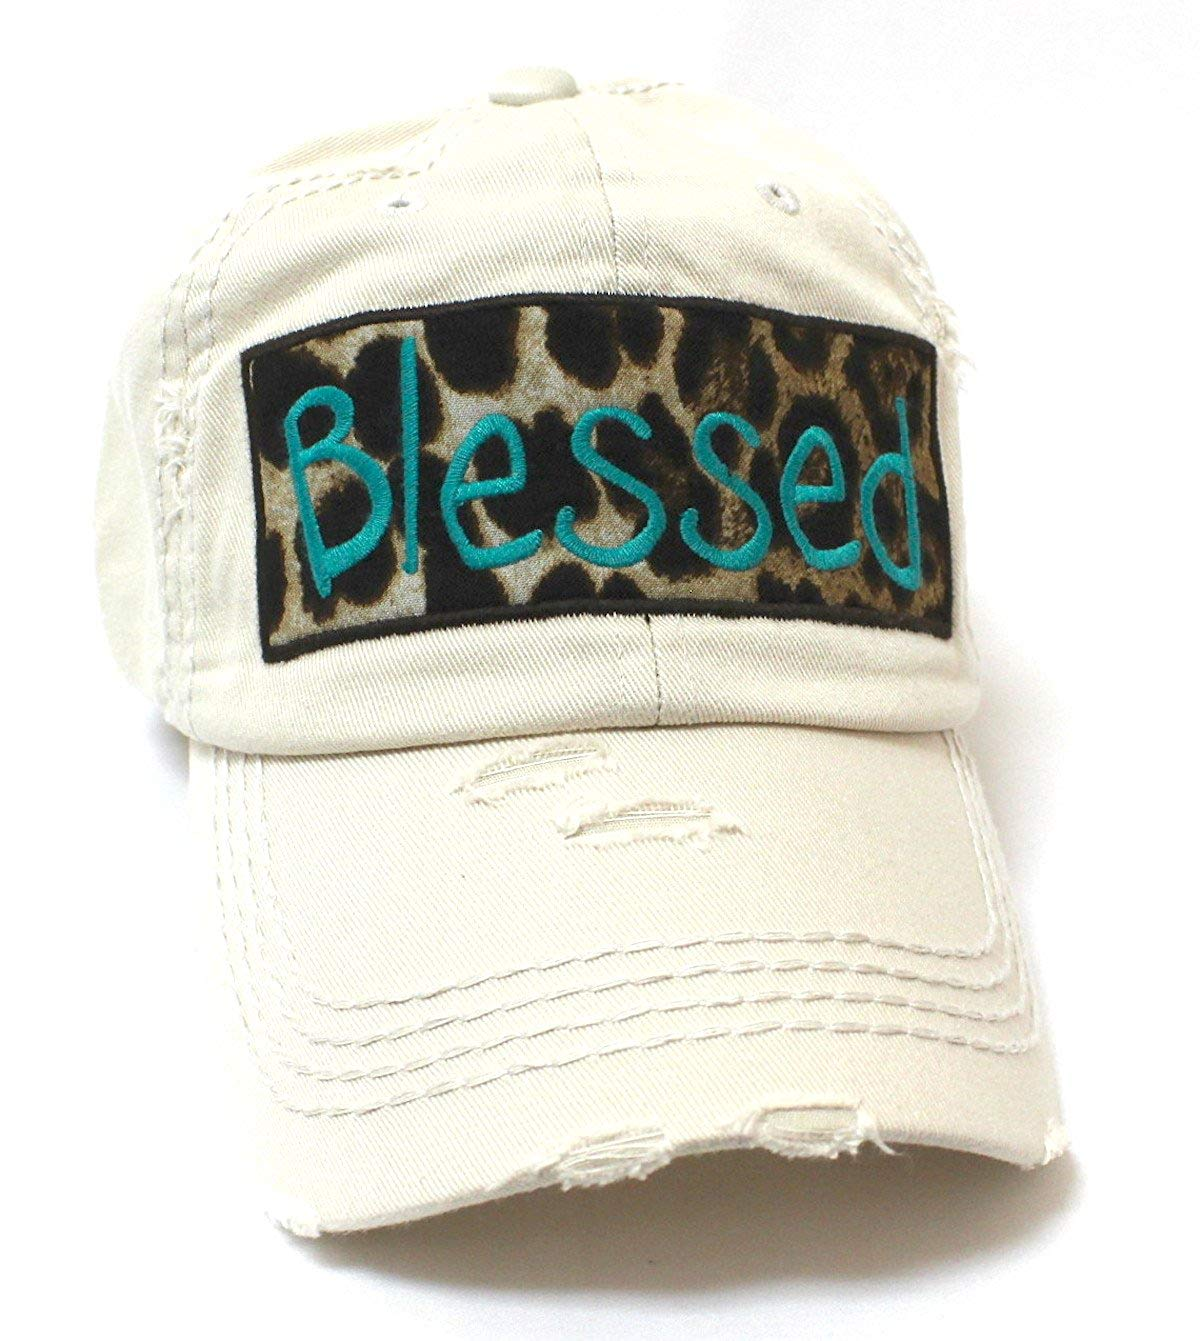 CAPS 'N VINTAGE Stone Ivory Blessed Leopard Patch Embroidery Hat - Caps 'N Vintage